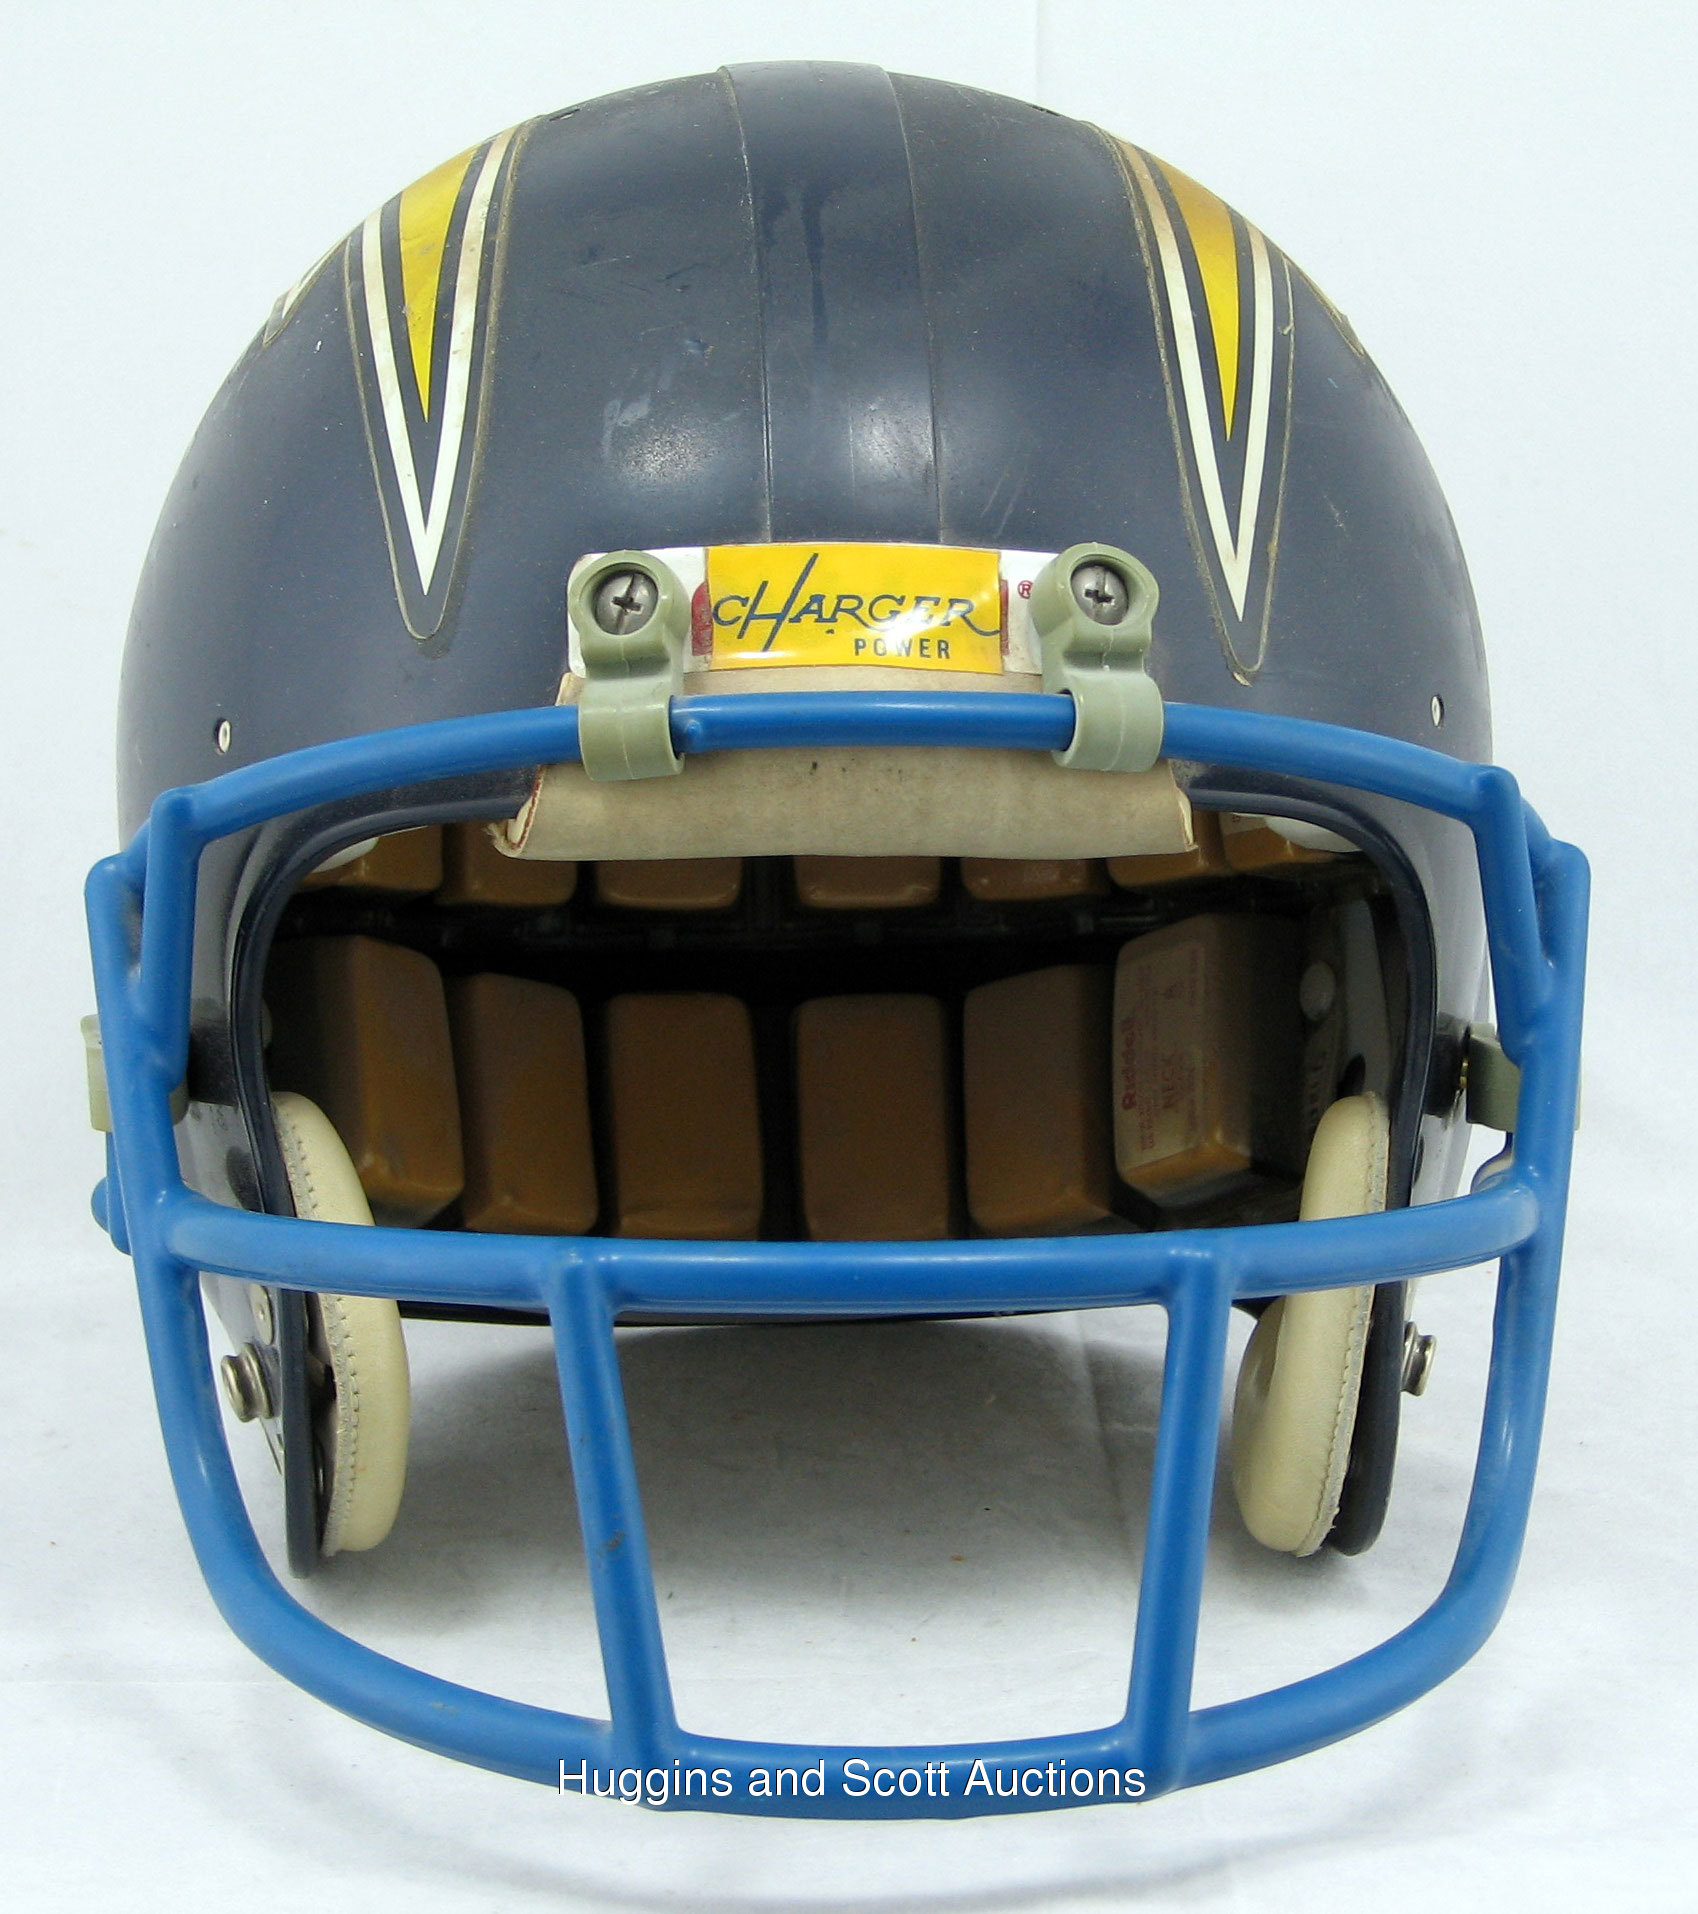 San Diego Chargers Game Online: 1974-87 San Diego Chargers Game-Used Helmet